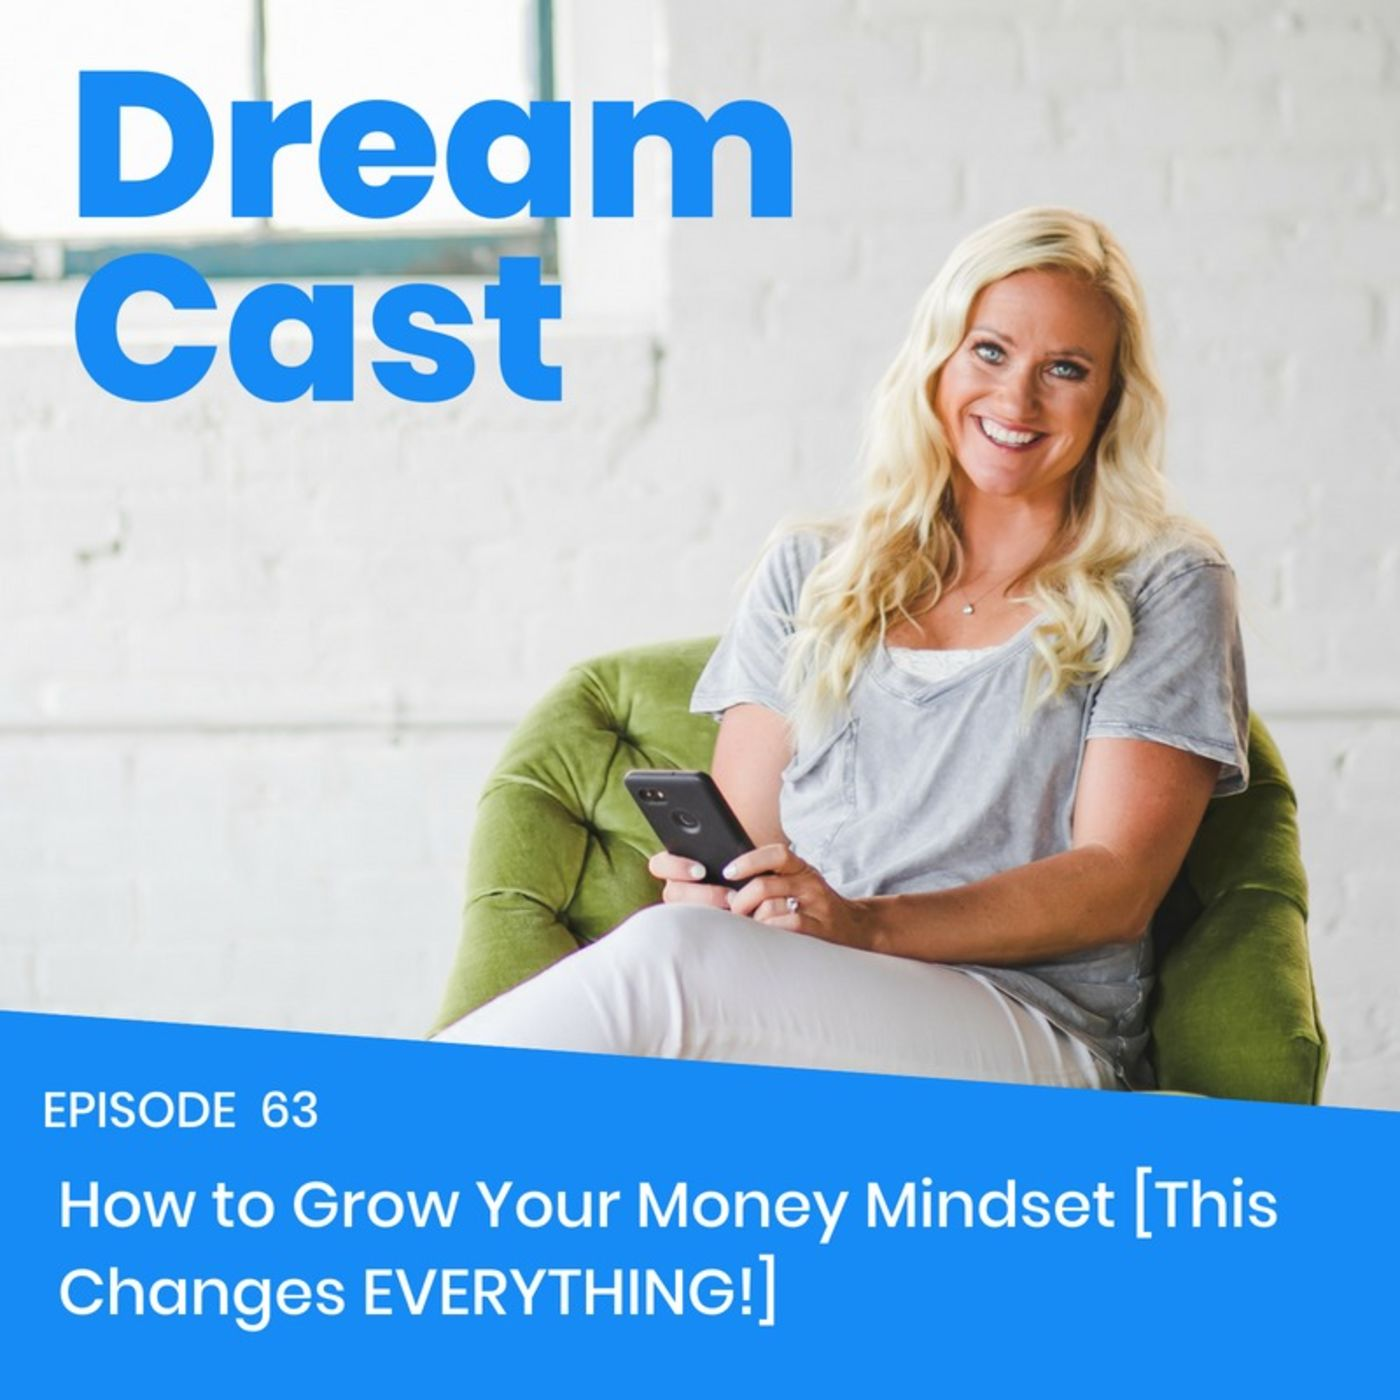 Episode 63 - How To Grow Your Money Mindset [This Changes EVERYTHING!]